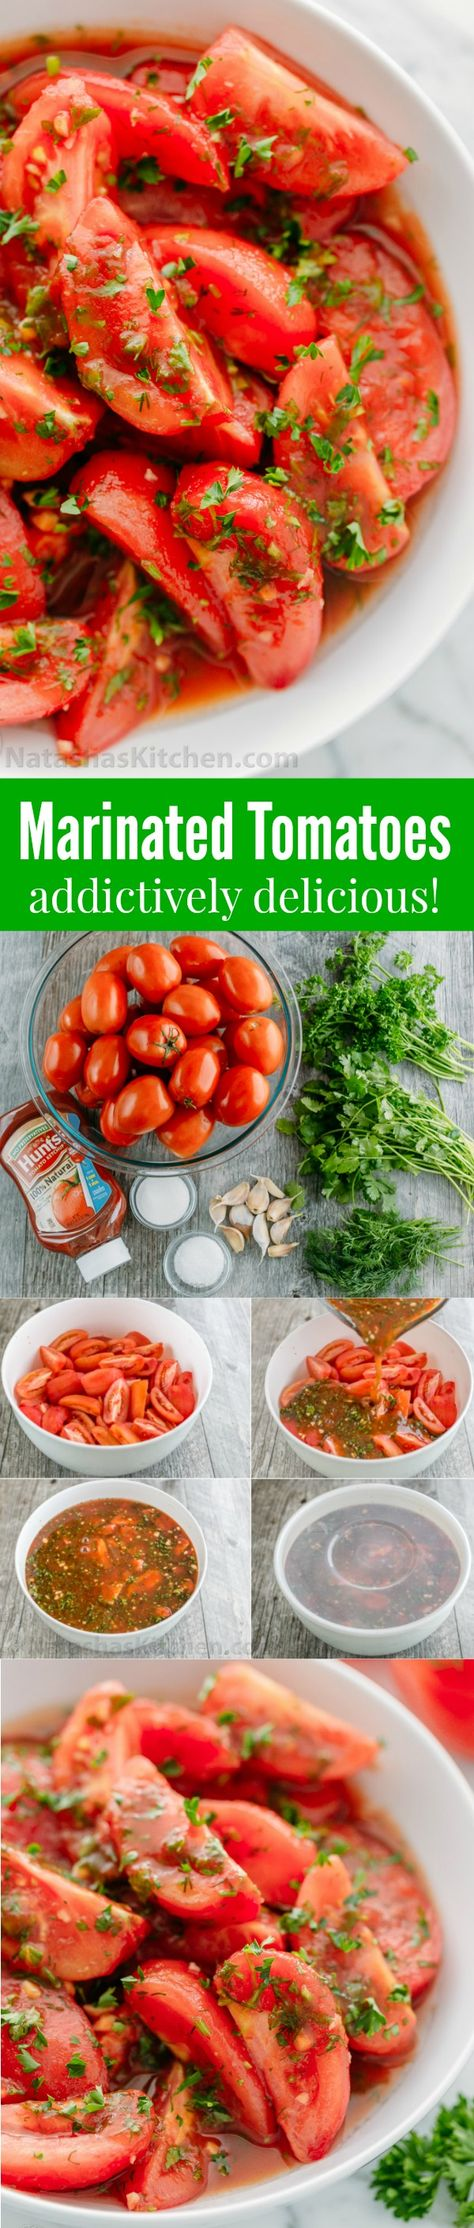 Addictively delicious! Served these marinated tomatoes at a potluck and everyone wanted the recipe! Marinated tomatoes are a great make-ahead side dish.